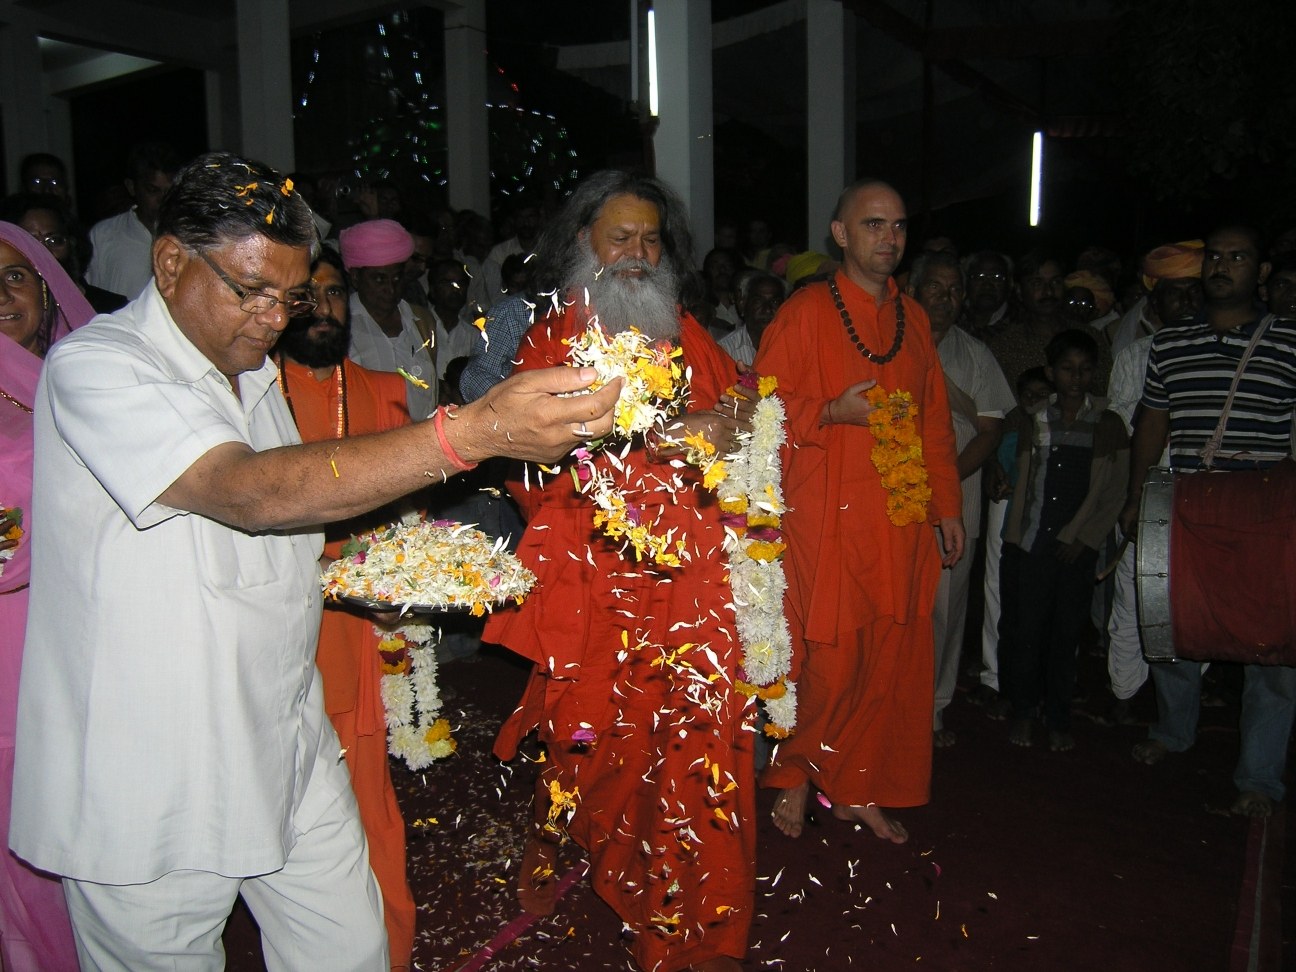 Welcoming Vishwaguru Maheshwarananda